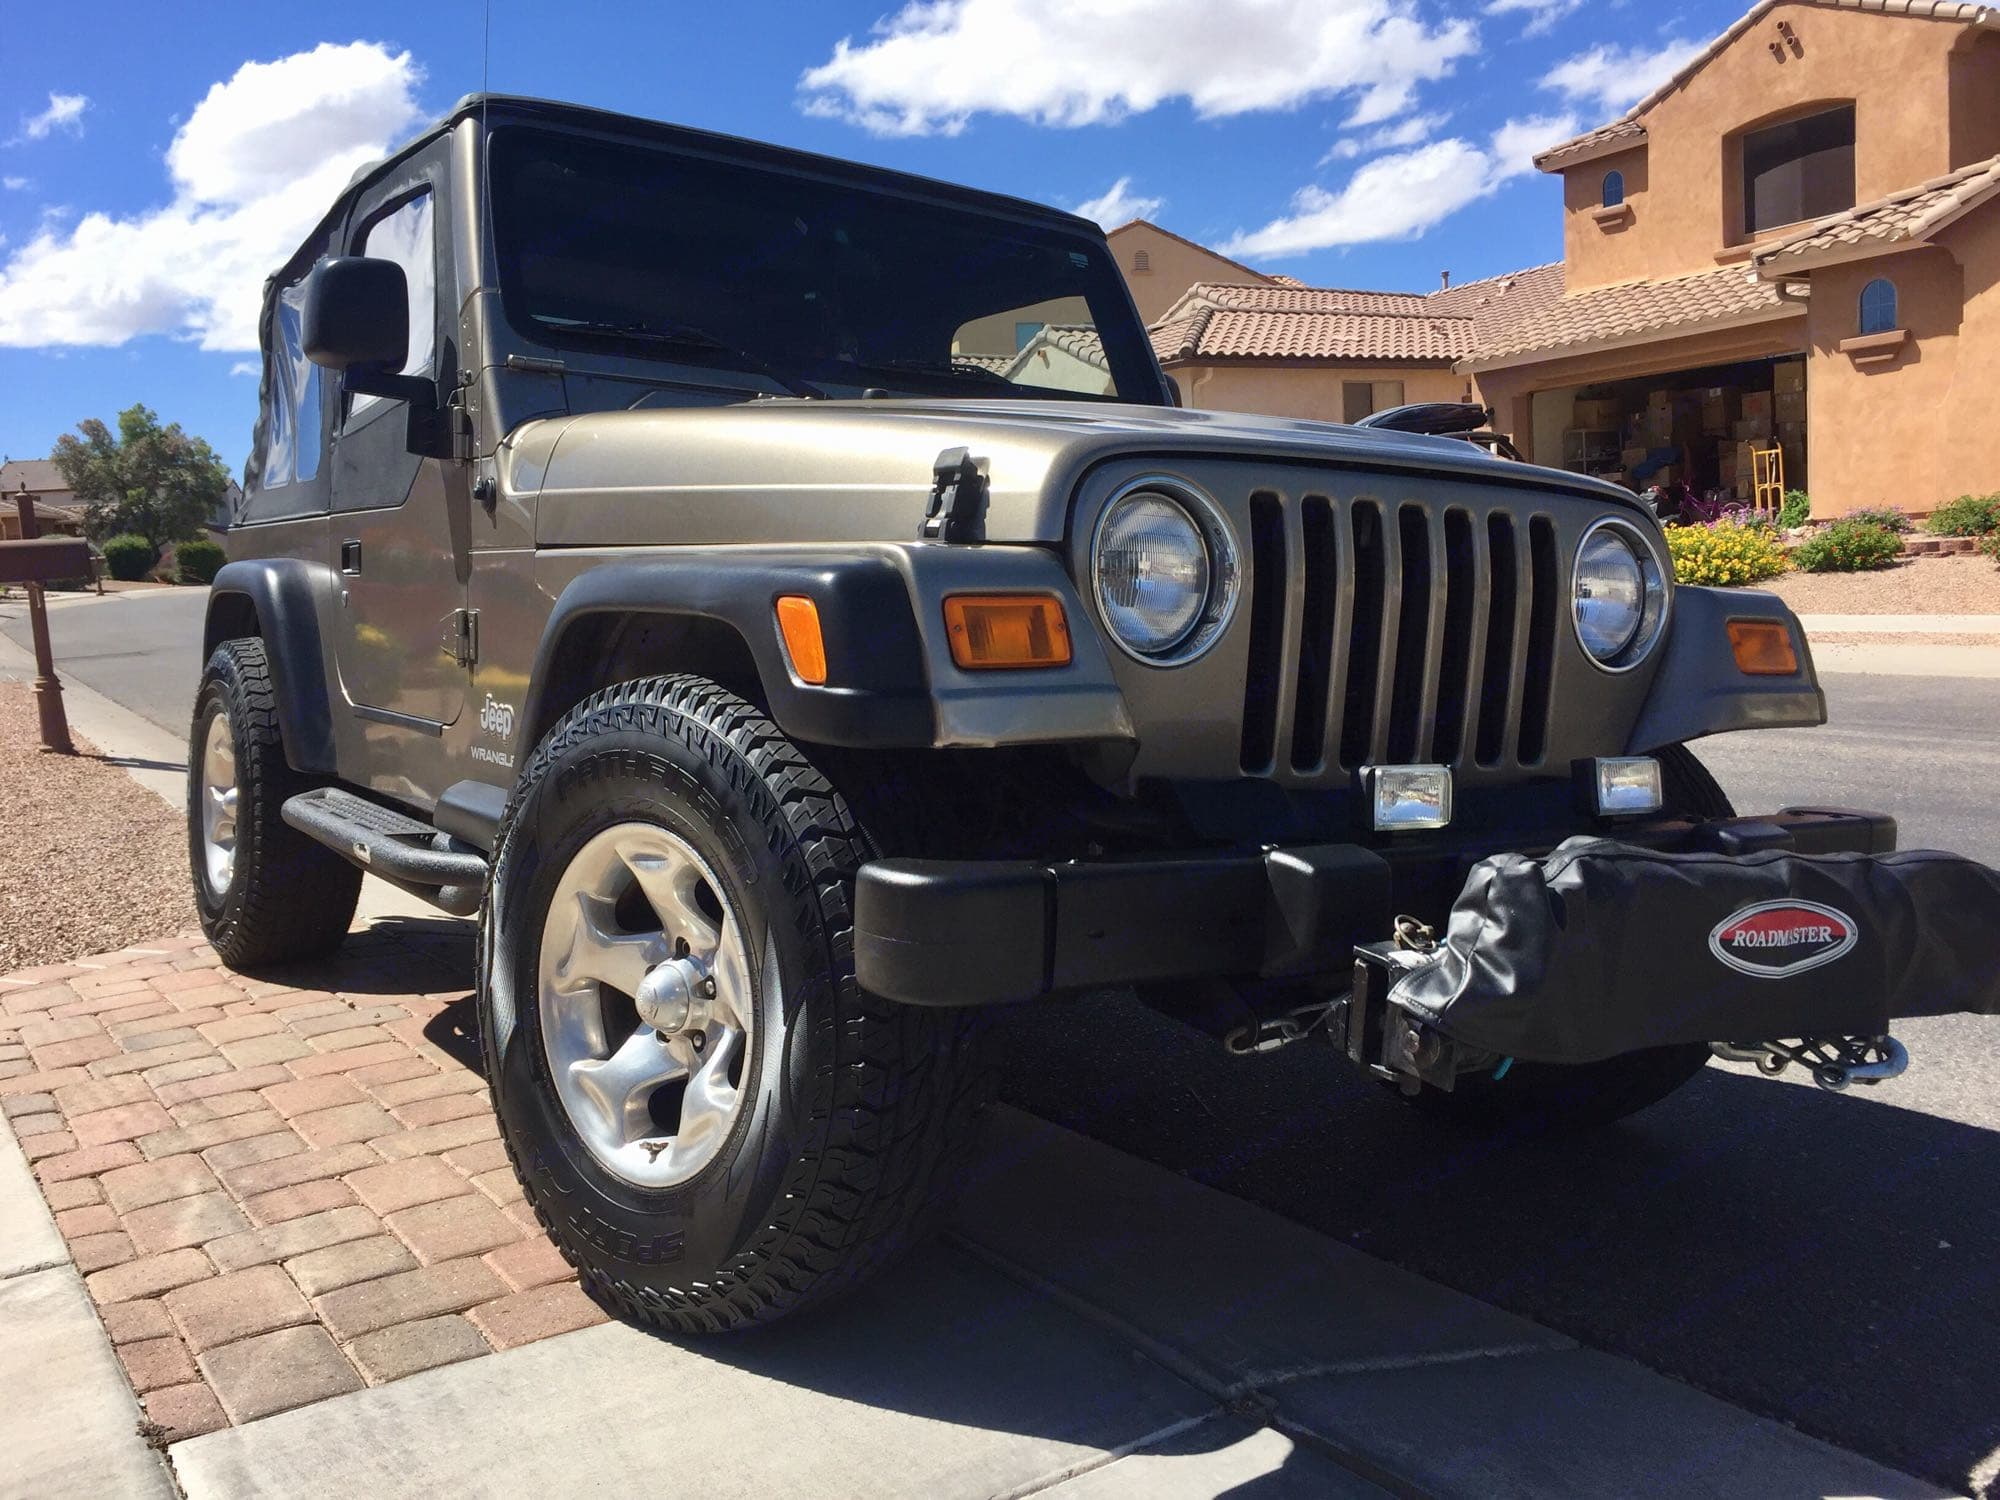 Jeep Wrangler 4x4, 4-cylinder, 2-door, softtop 2003